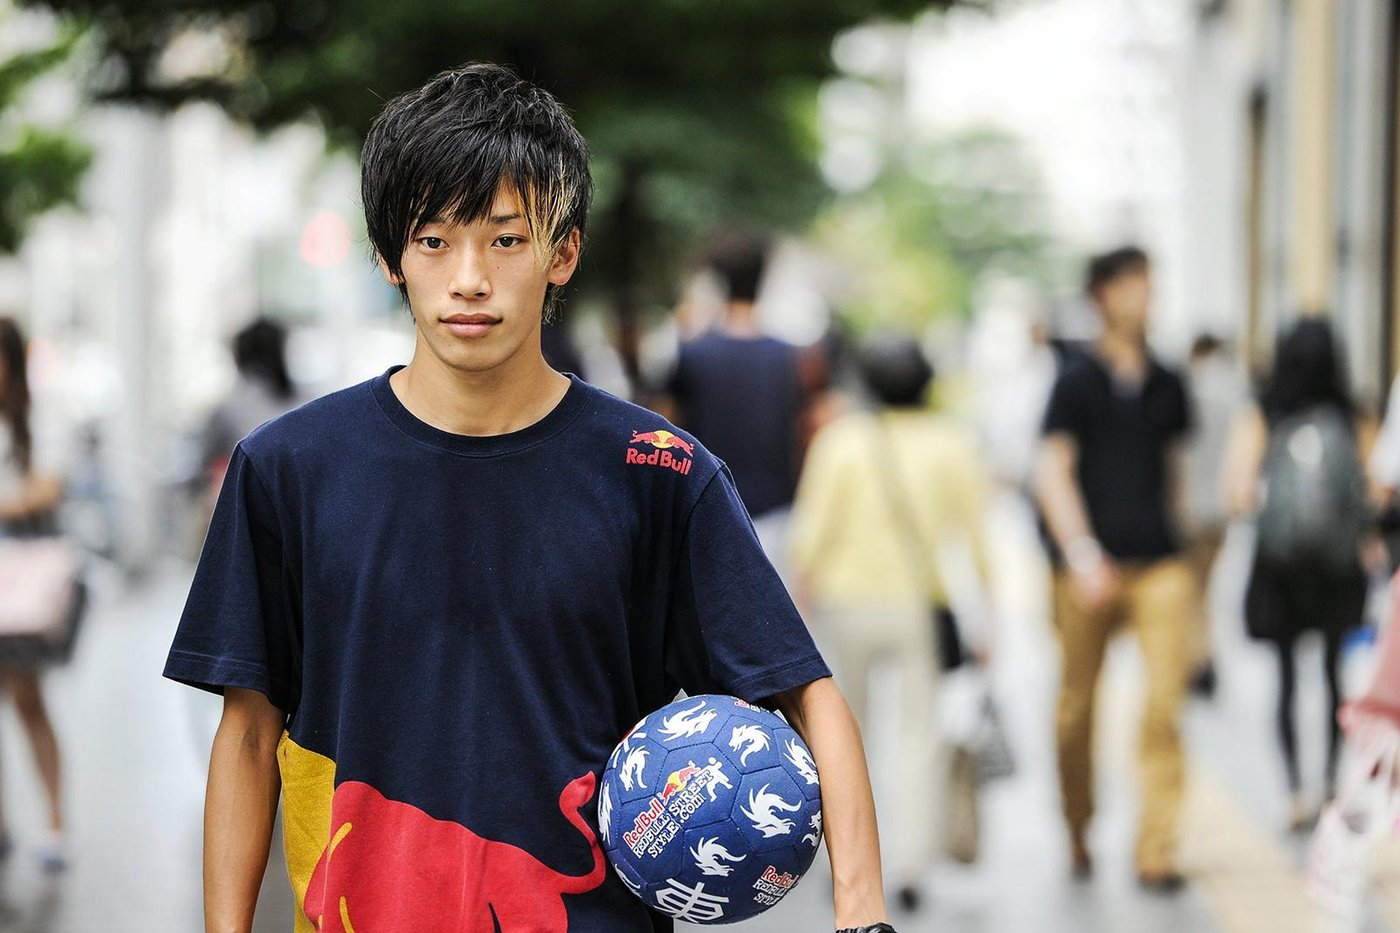 Kotaro Tokuda walks through Nagoya city prior to the Red Bull Street Style Japan Final 2014 at the Sirakawa park in Nagoya, Japan on September 5th, 2014 // Naoyuki Shibata/Red Bull Content Pool // P-20141002-00140 // Usage for editorial use only // Please go to www.redbullcontentpool.com for further information. //